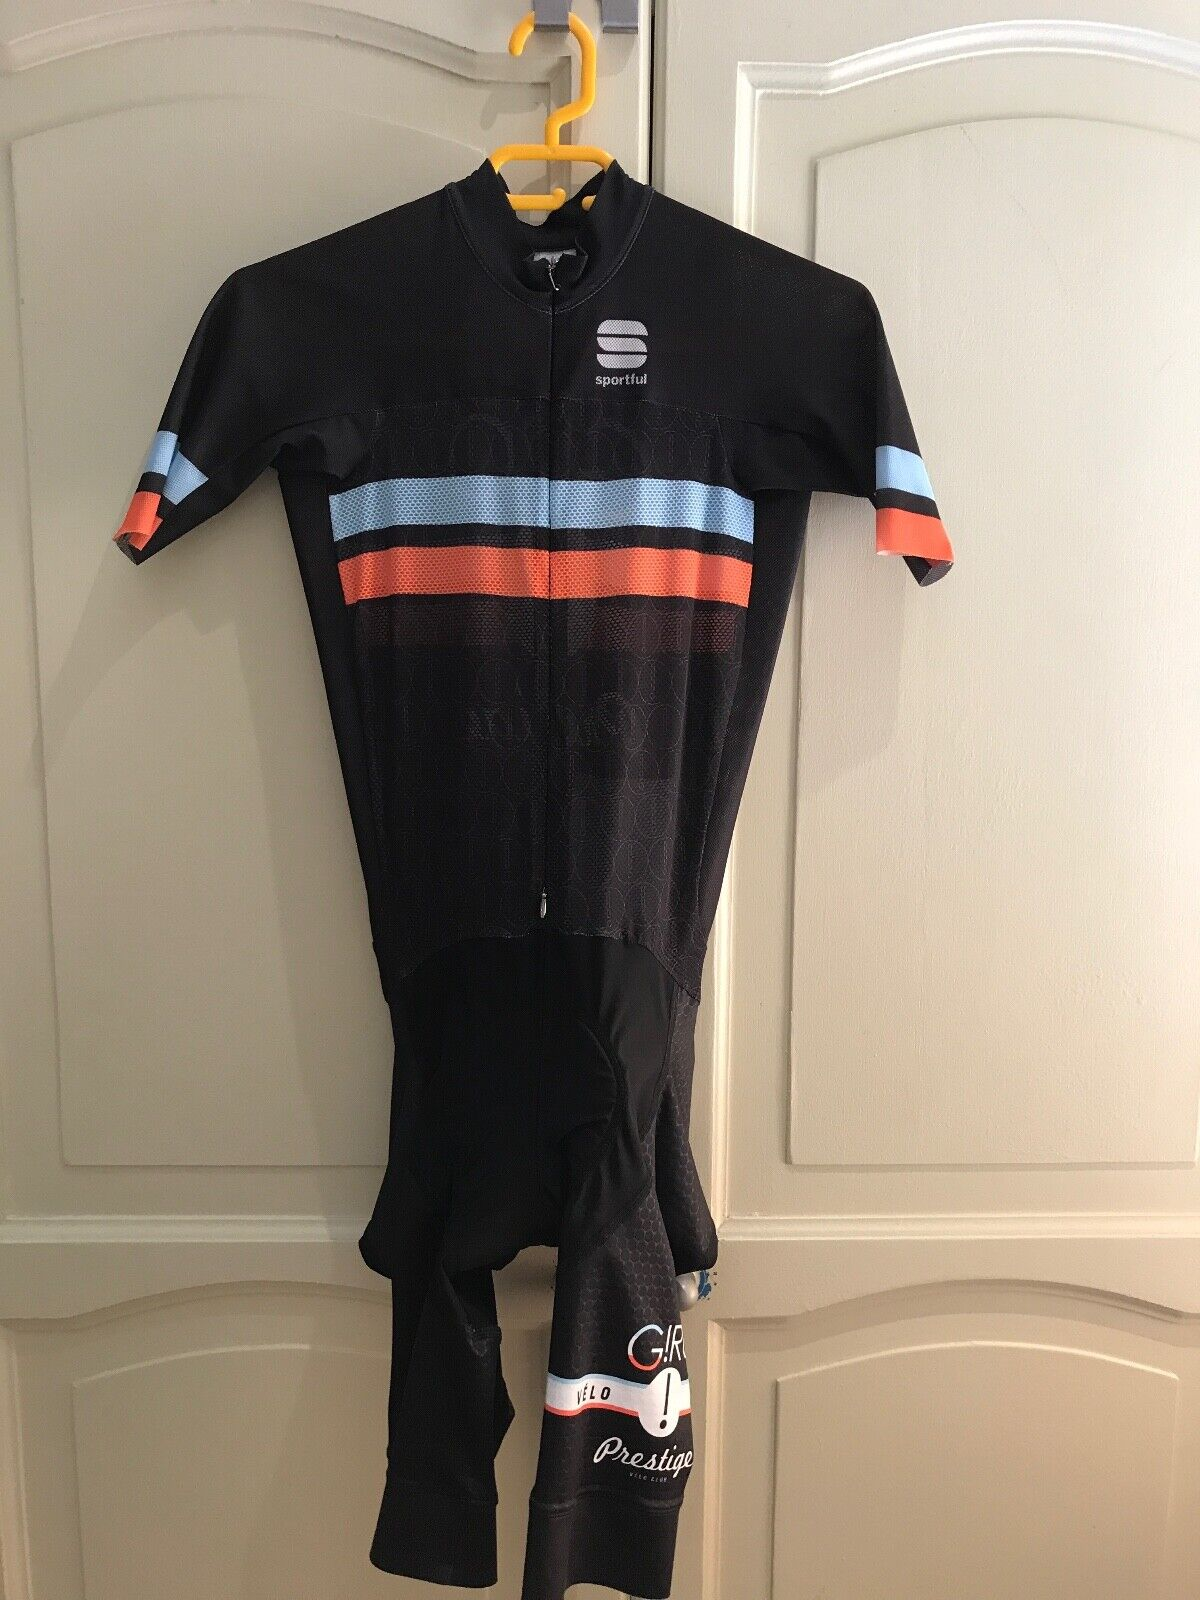 Men's Sportful Skin Suit    Road Suit - size small  first-class service